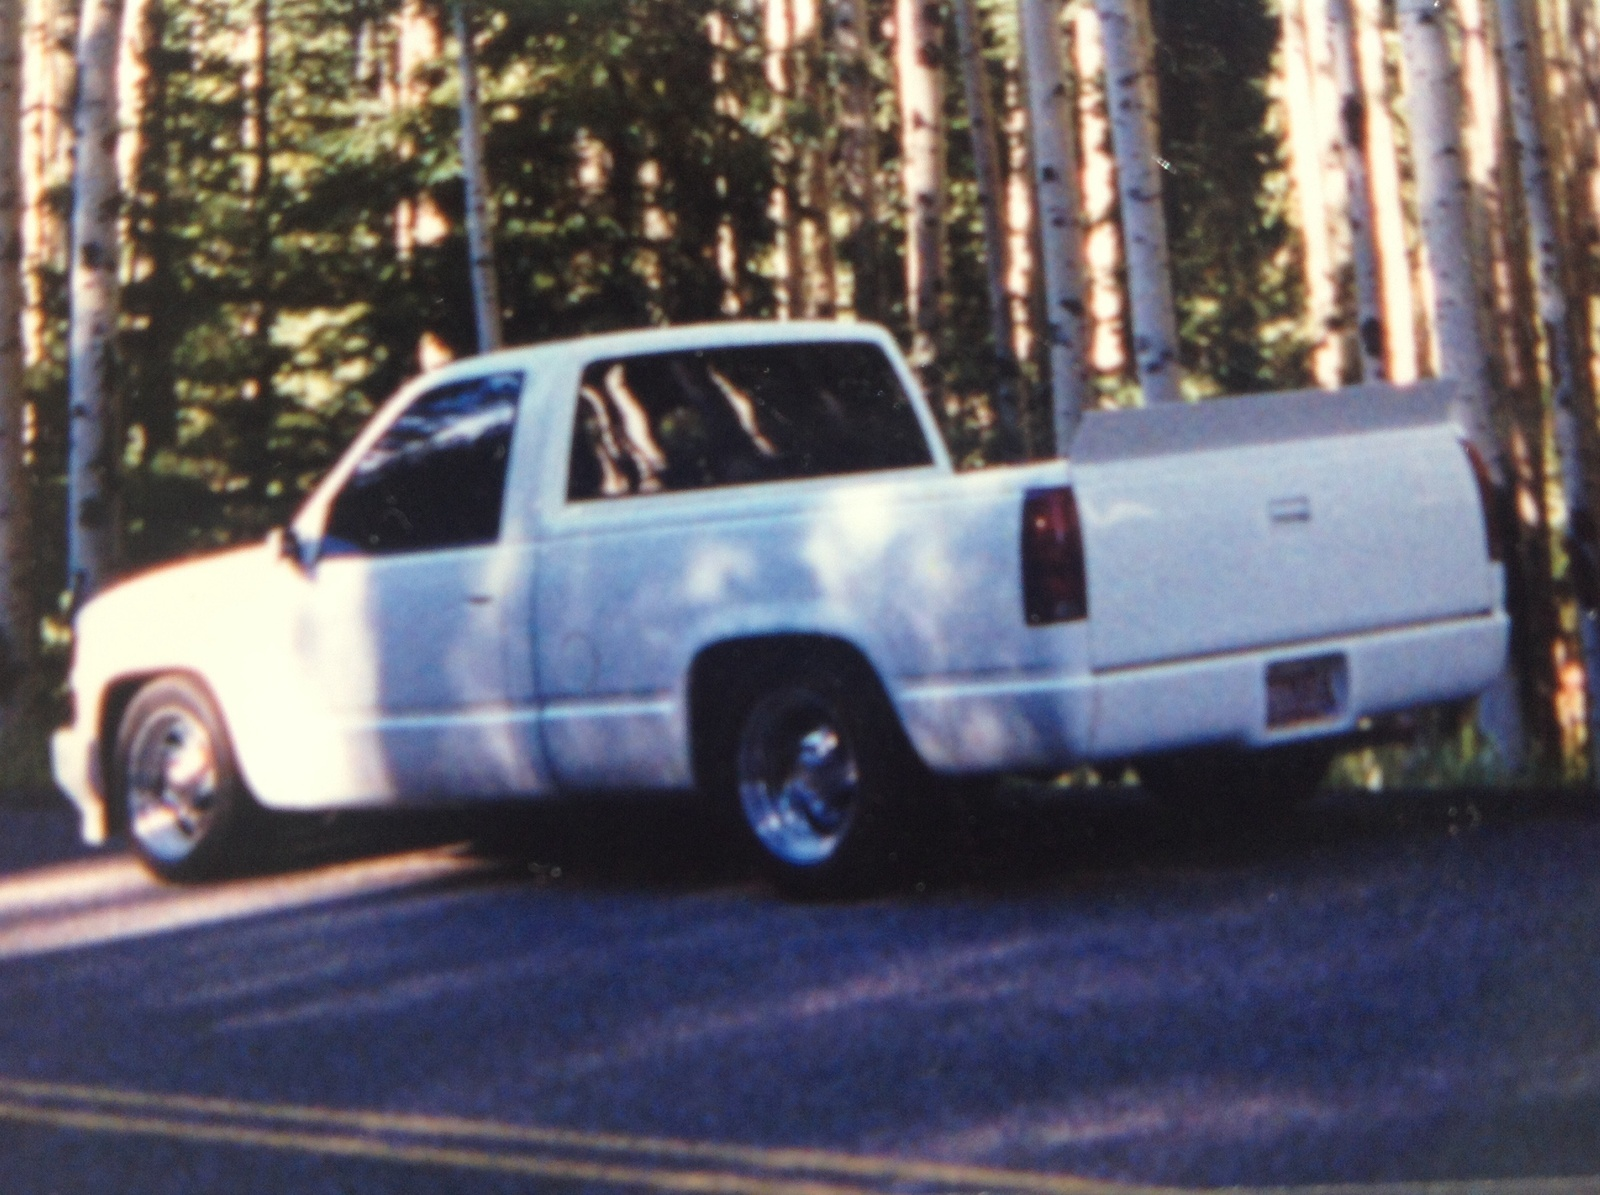 All Chevy 1991 chevy 3500 : Chevrolet C/K 1500 Questions - Can I turbocharge a 1991 chevy ...